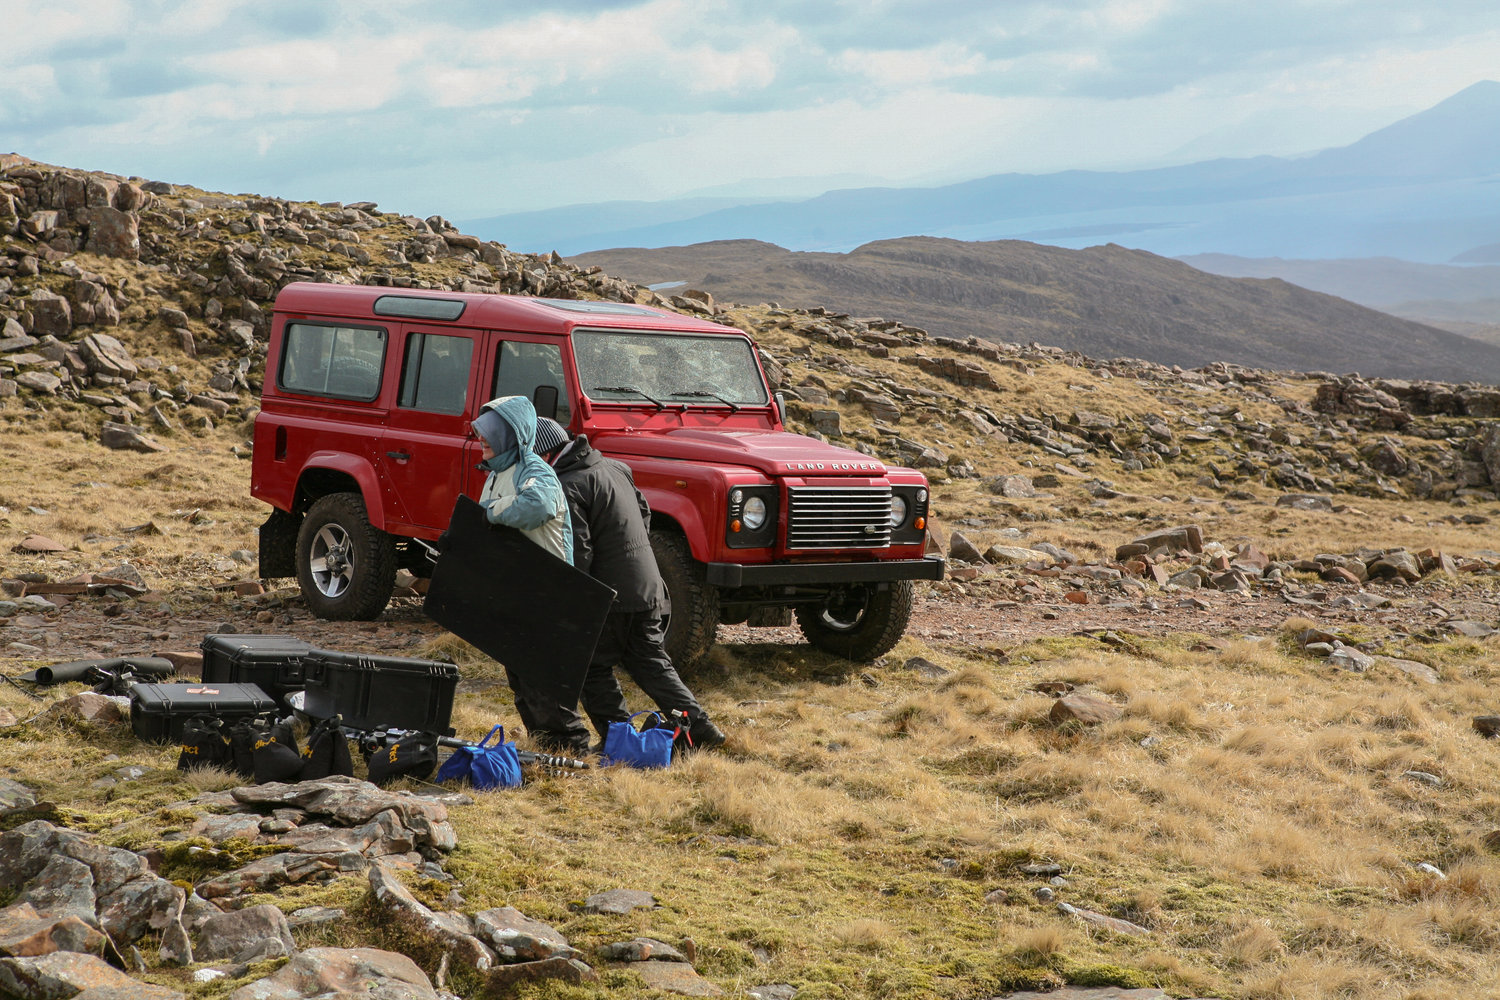 Landrover Defender Advertising Campaign - Photographic Production by Luke Jackson